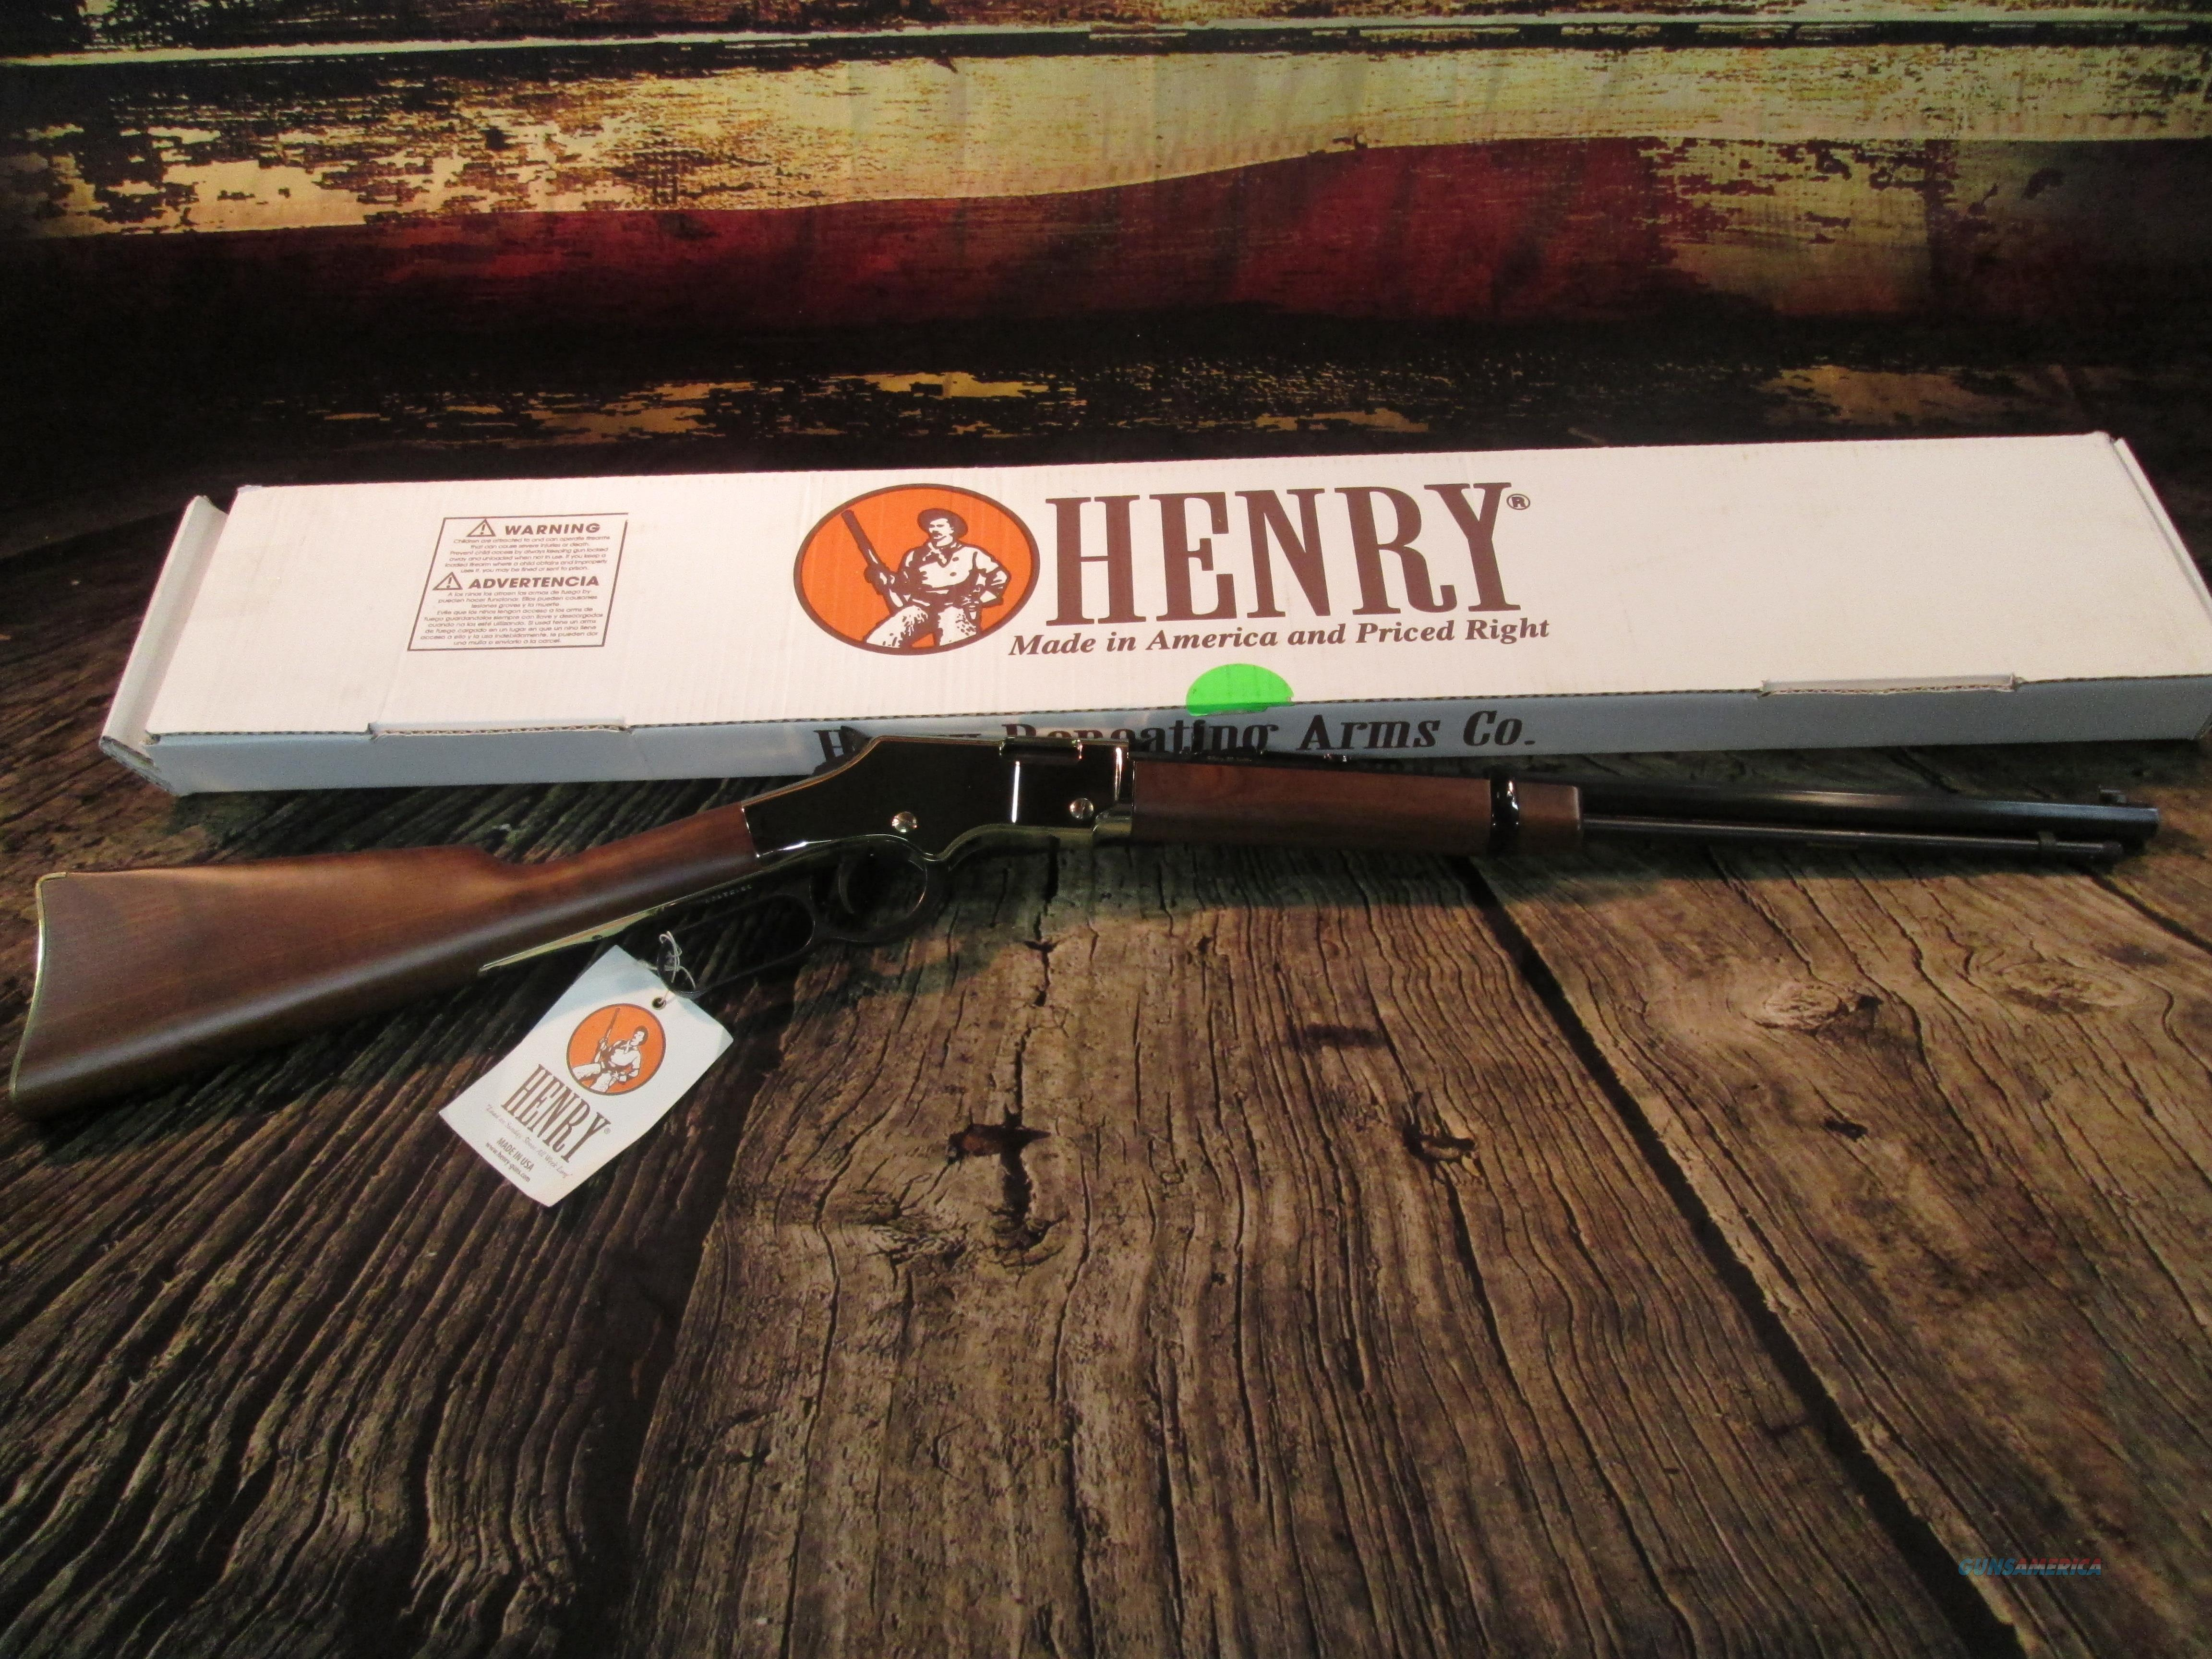 HENRY GOLDEN BOY 22 LR/L/S USED EXCELLENT CONDITION (62772)  Guns > Rifles > Henry Rifle Company